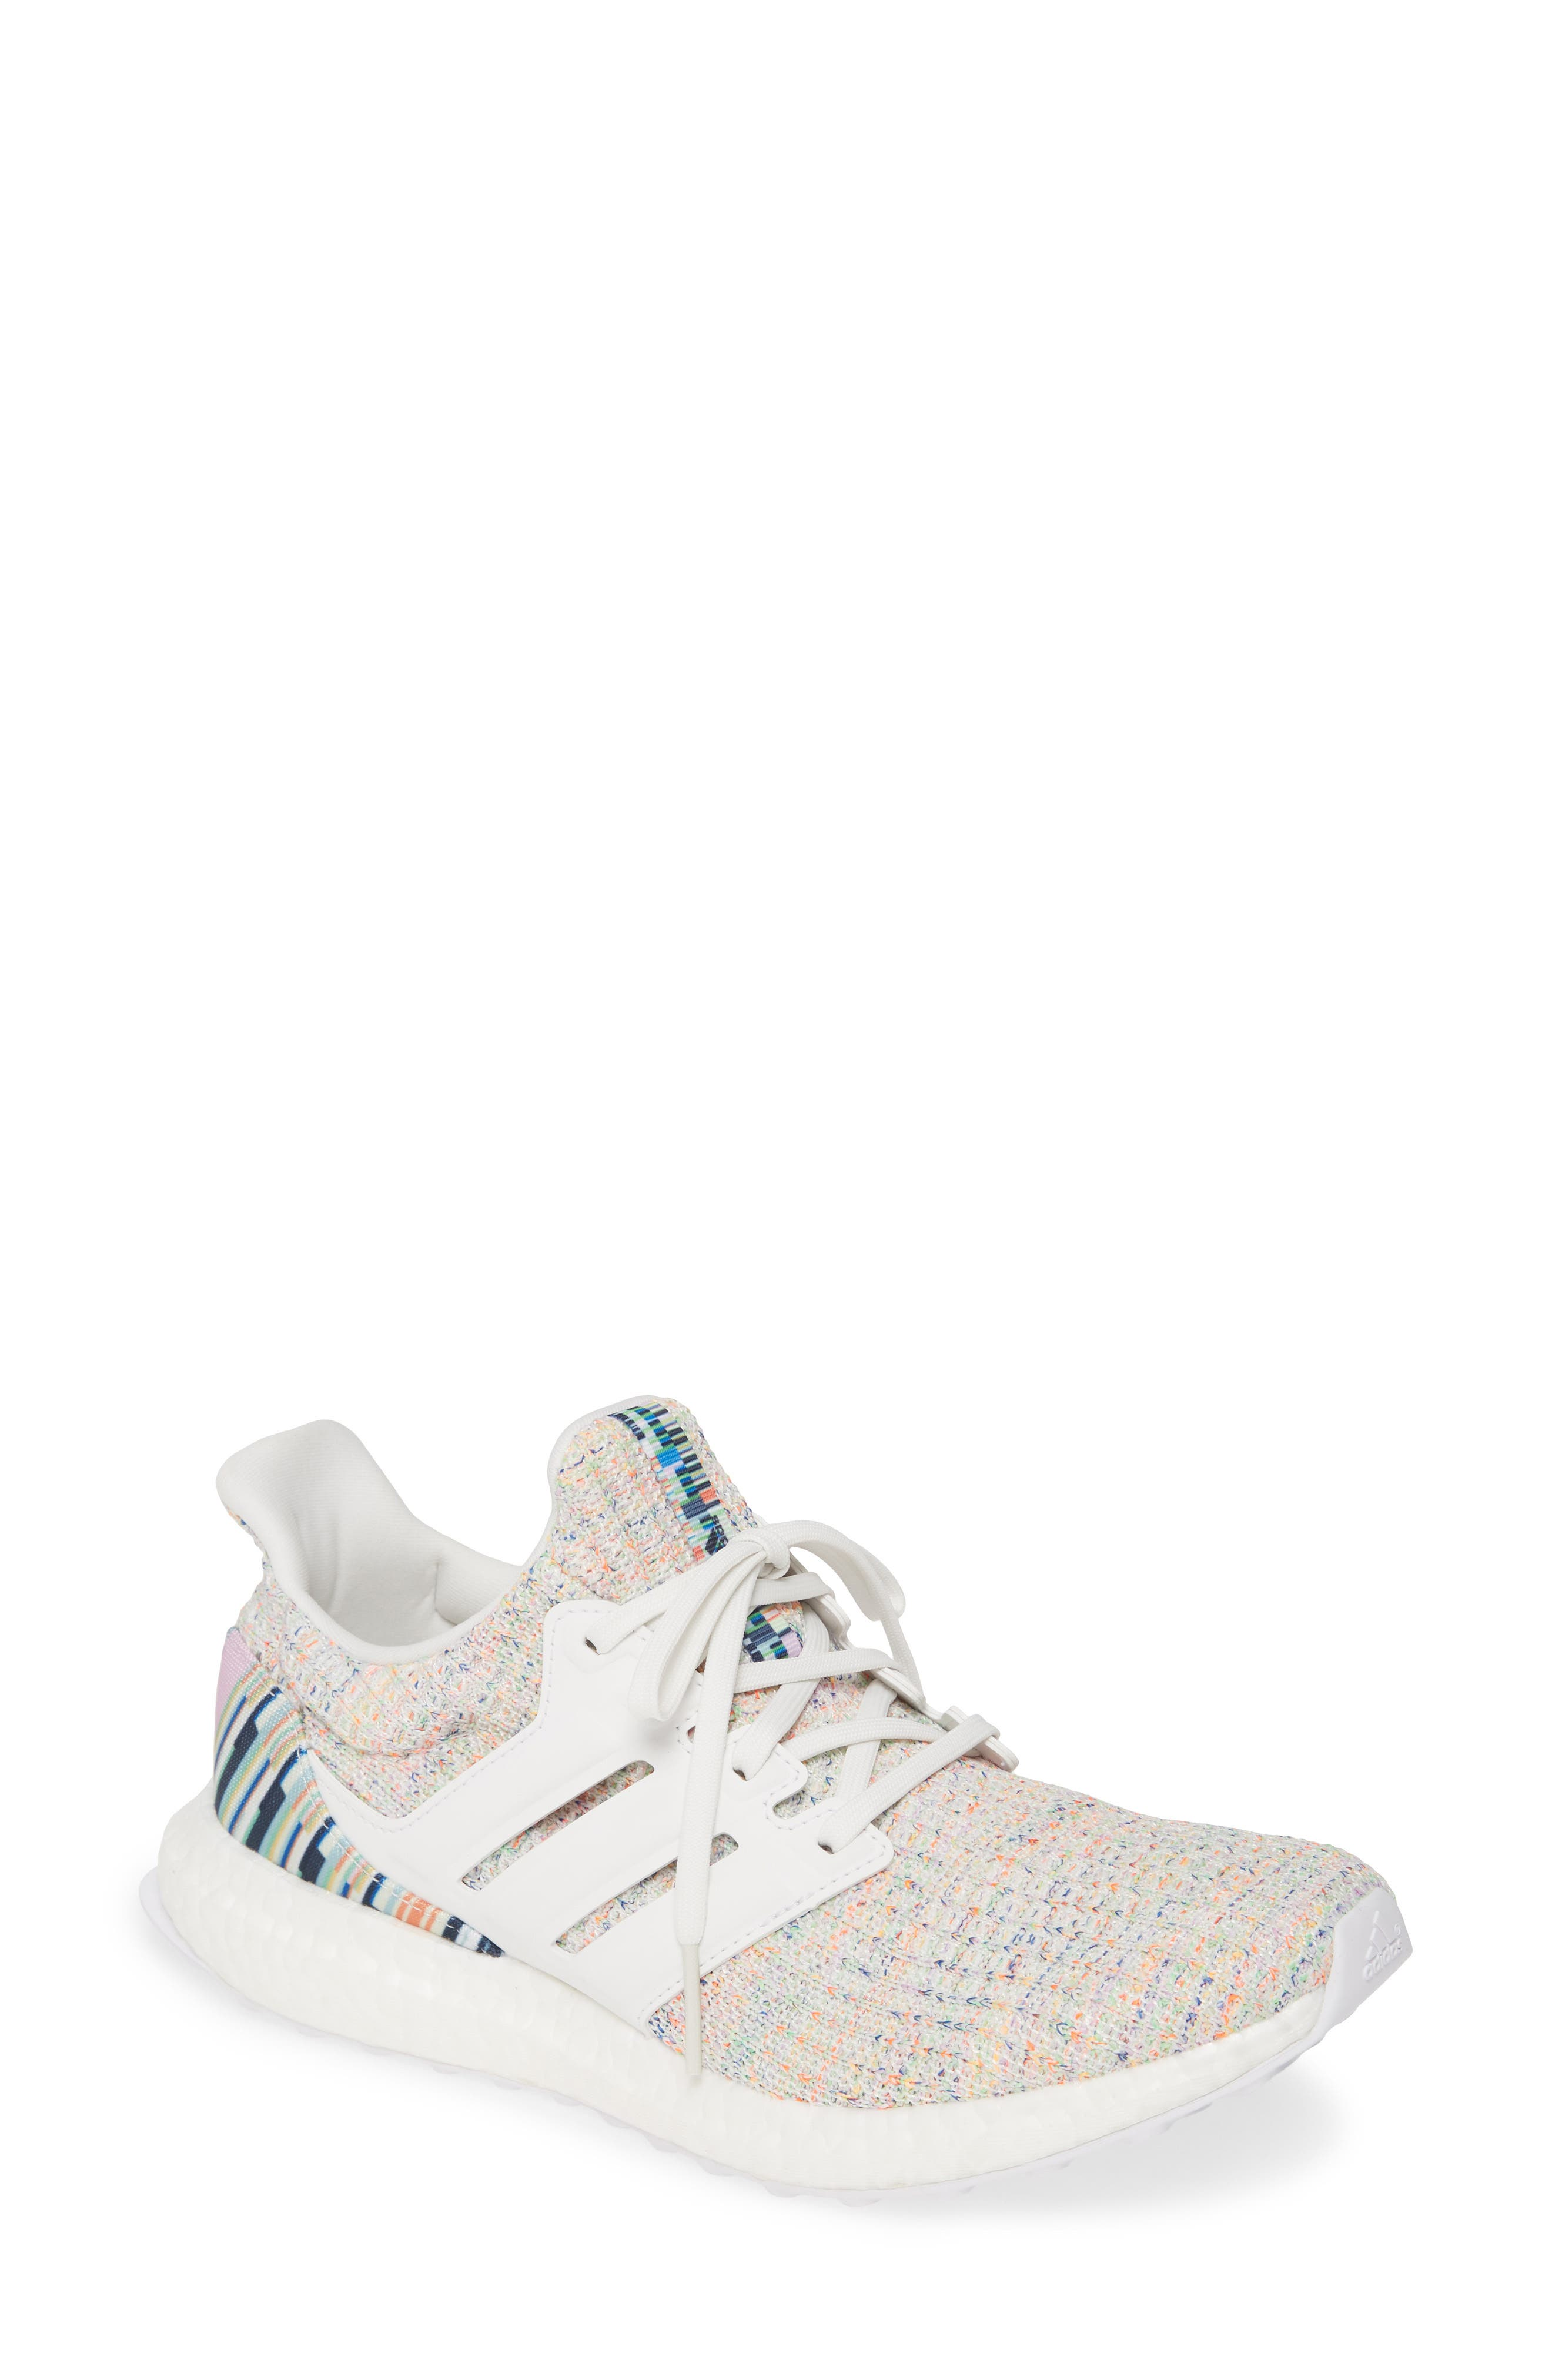 Women's adidas Shoes   Nordstrom